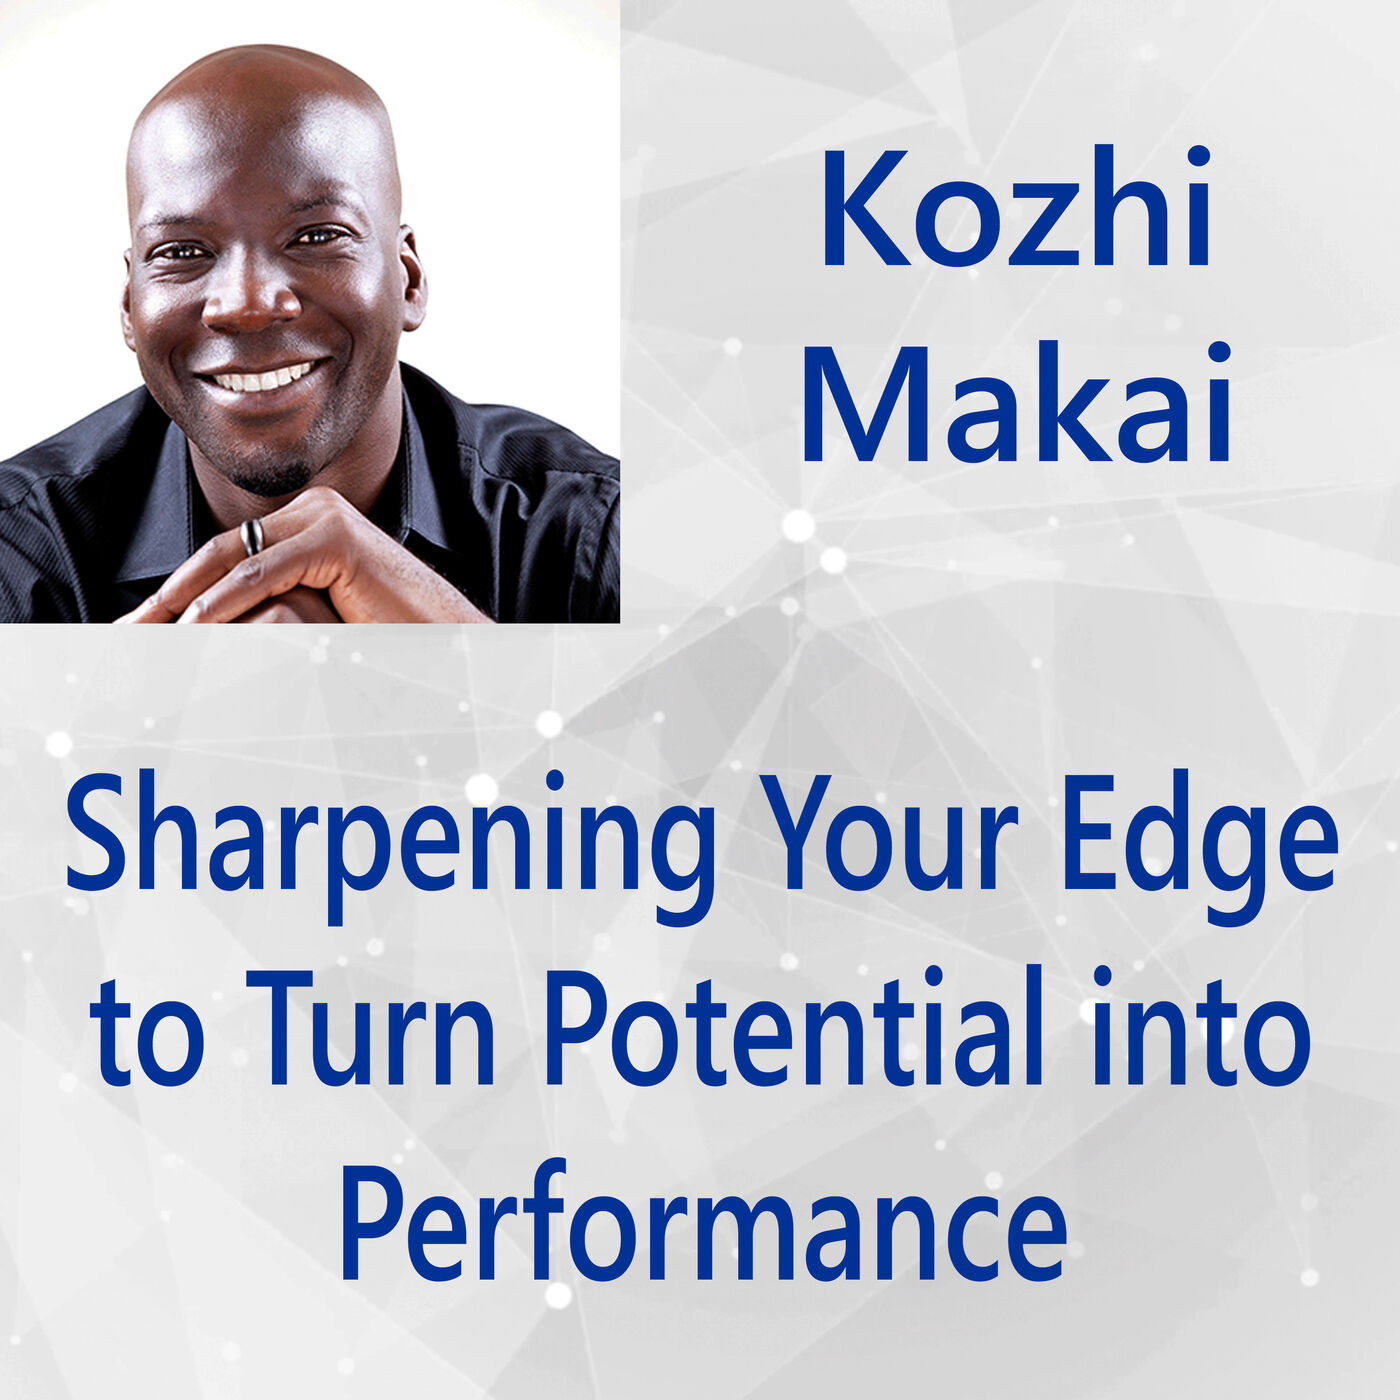 103: Sharpening Your Edge to Turn Potential into Performance